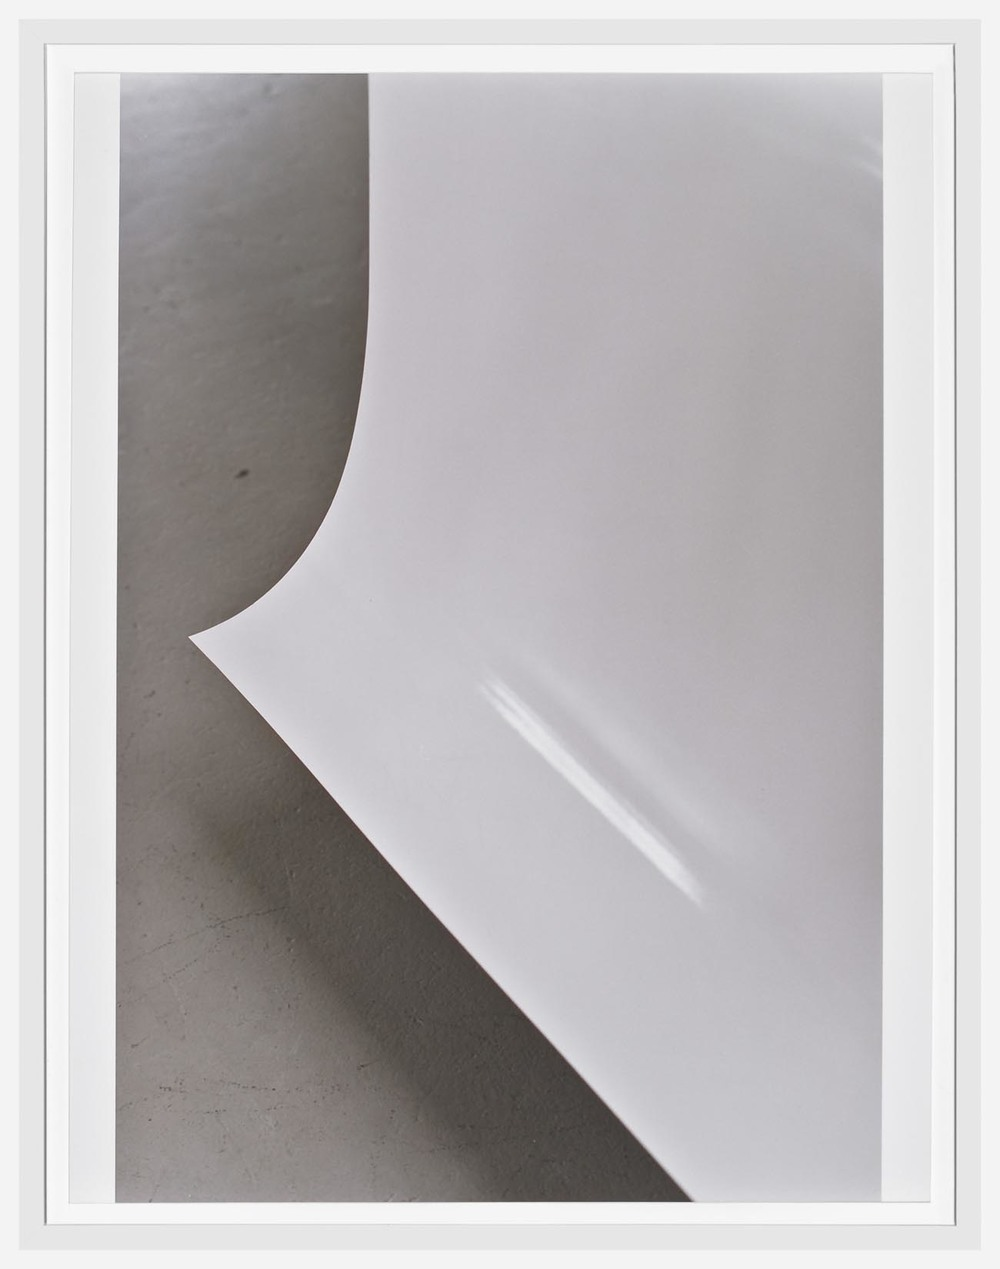 Wolfgang Tillmans Paper Drop (White) B 2004 c-prints 44 x 33.9 cm